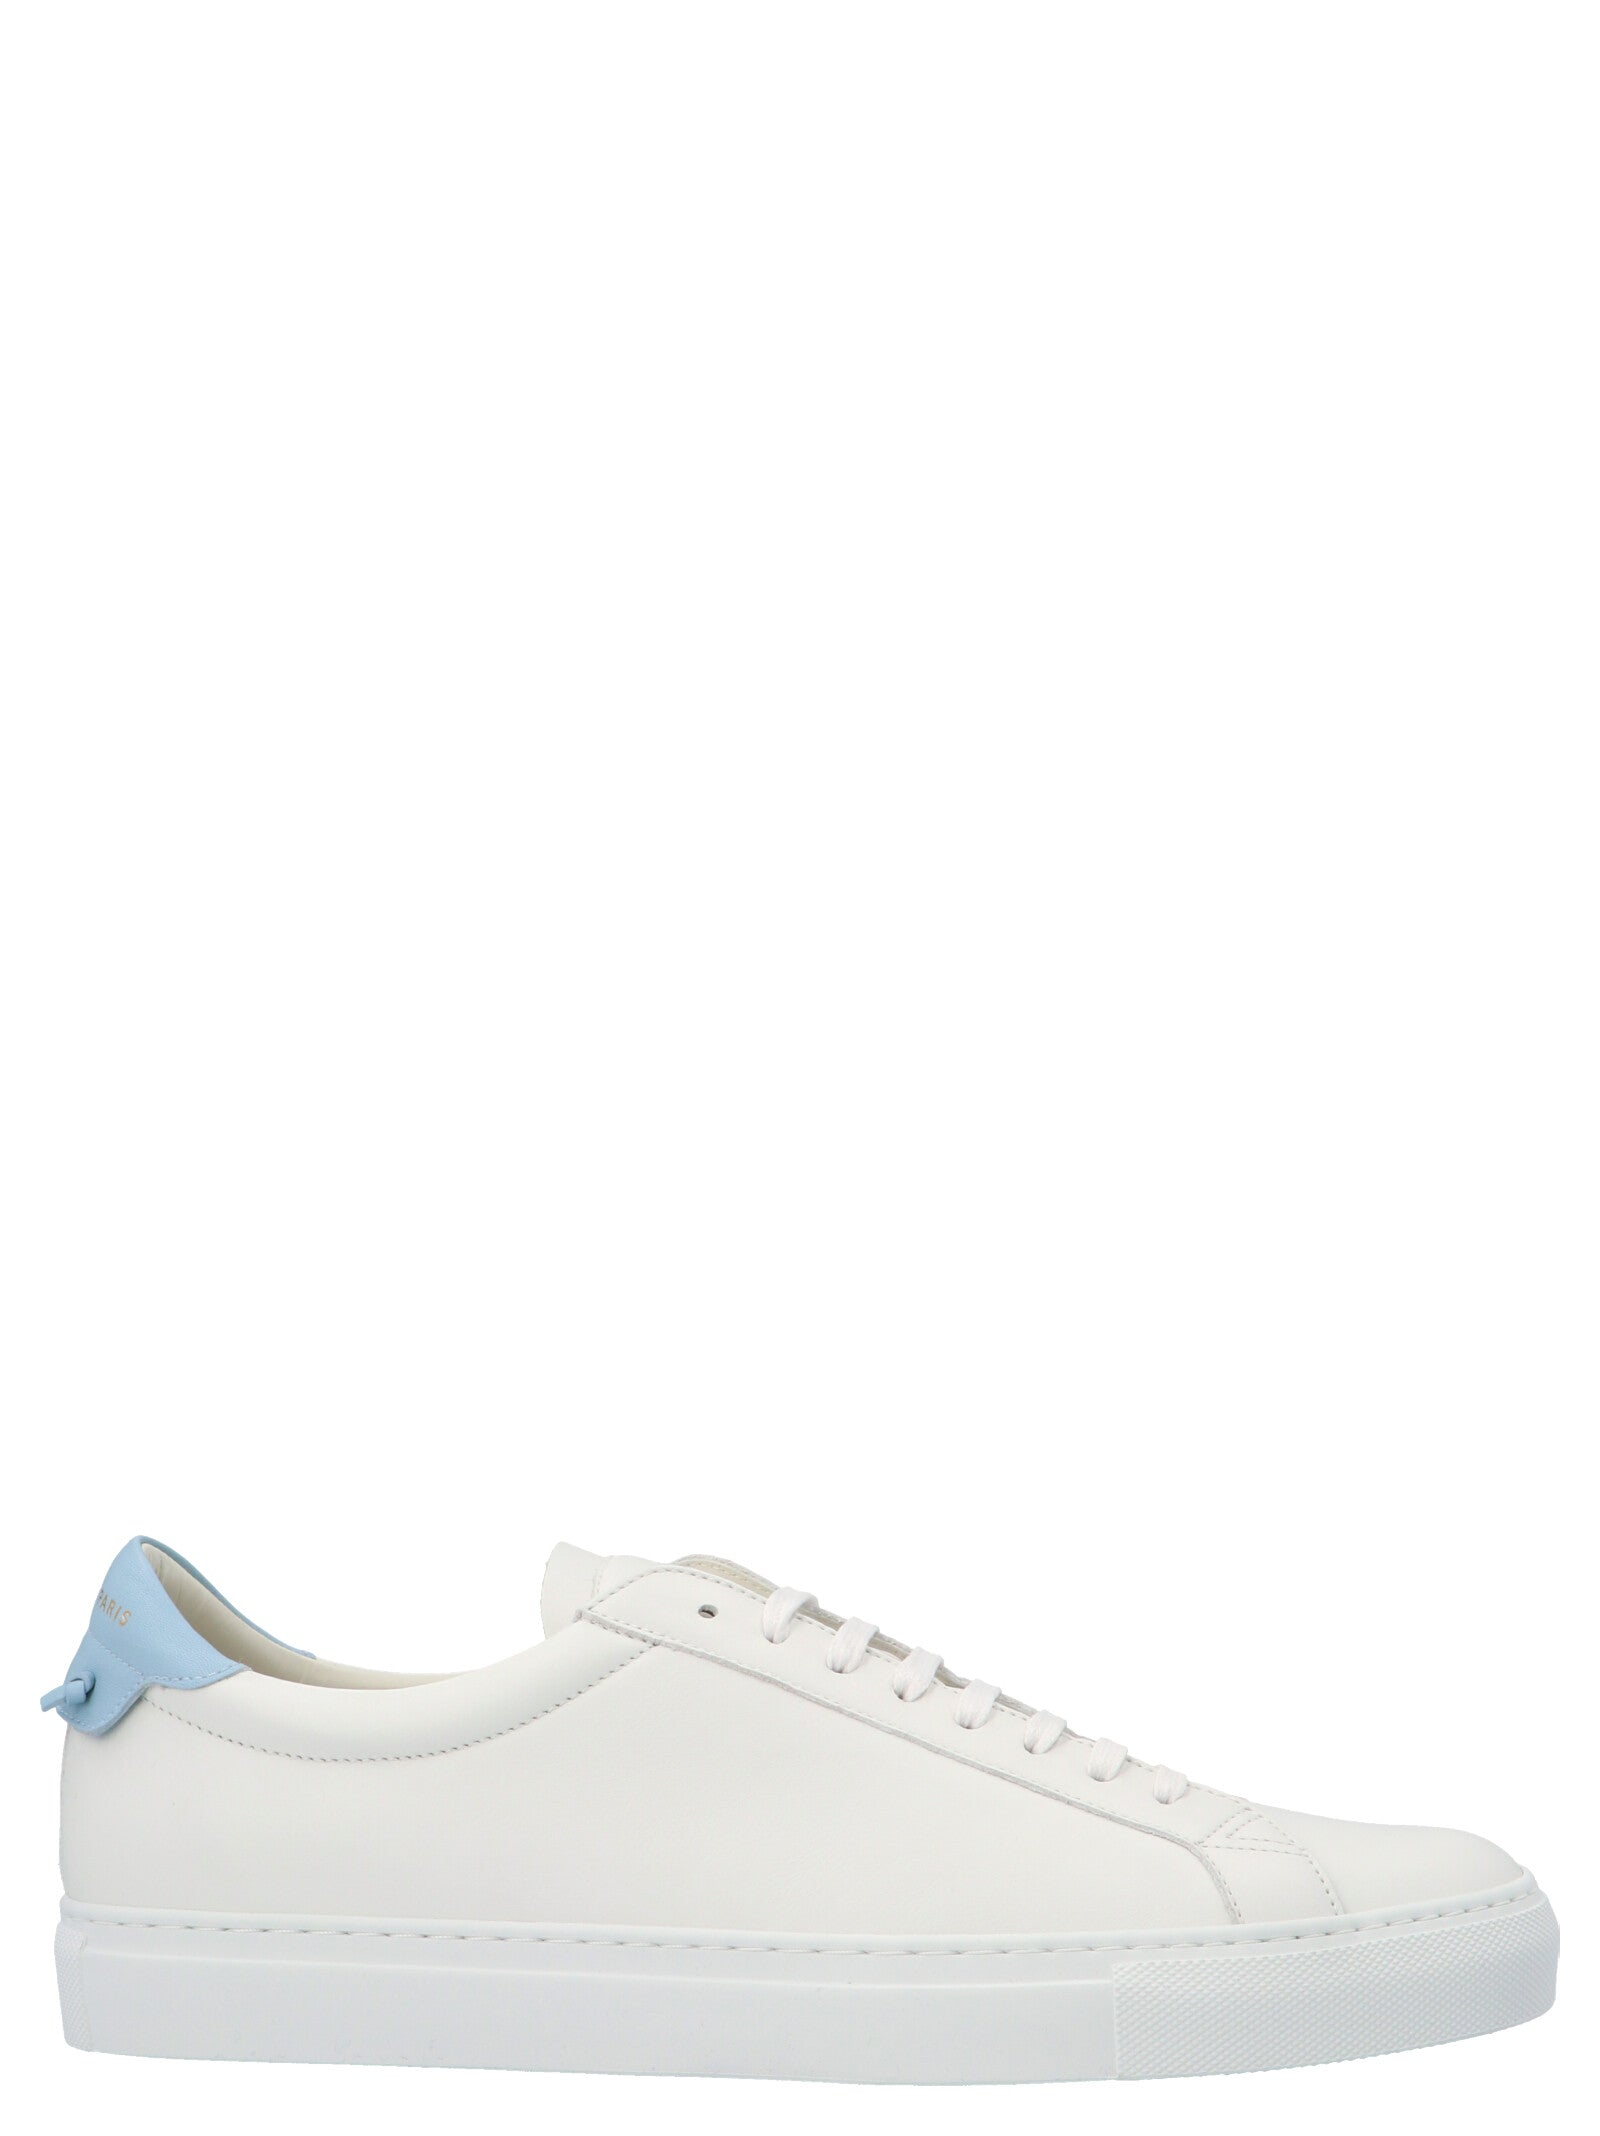 Givenchy GIVENCHY URBAN STREET SNEAKERS